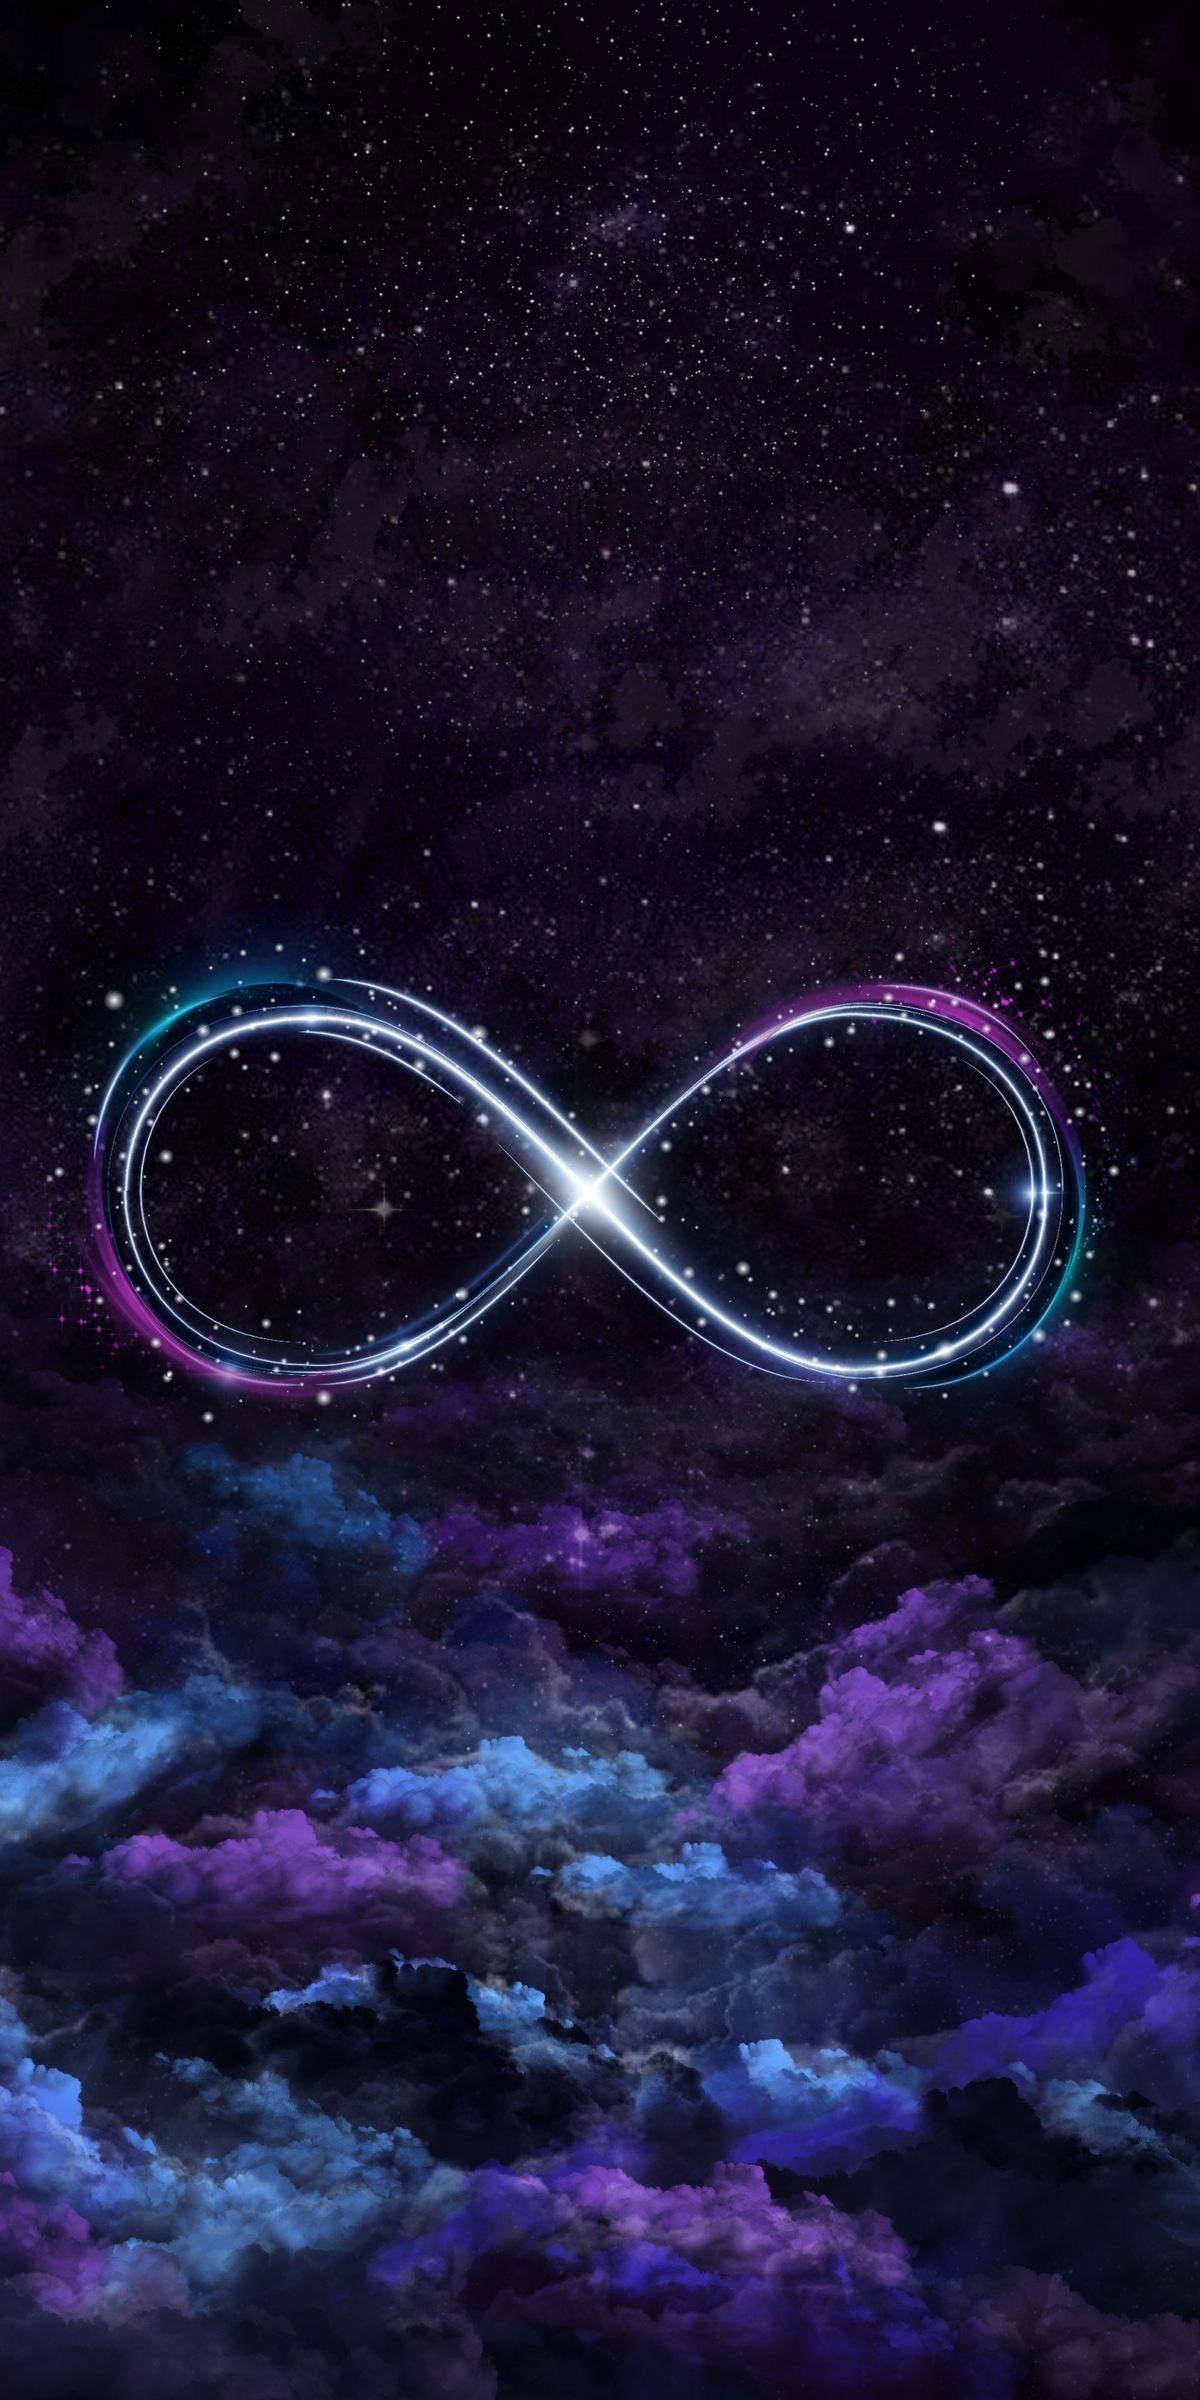 From The Ashes With The Infinity Symbol Instead Of A Pheonix Unicorn Wallpaper Cute Unicorn Wallpaper Galaxy Wallpaper